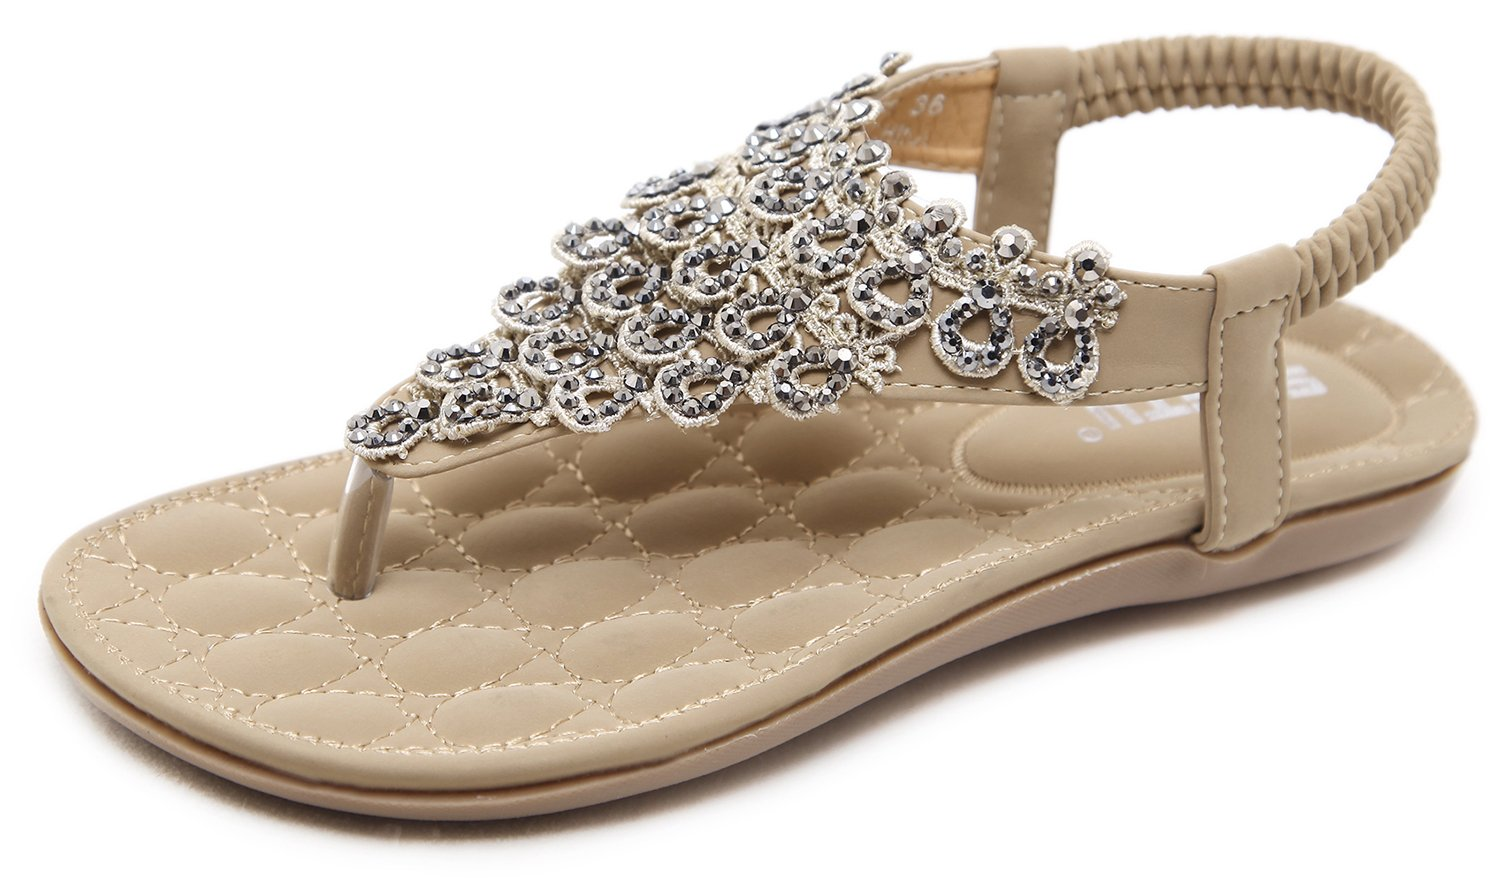 DolphinBanana Women's Summer Thong Flat Sandals Blingbling Rhinestones, Beige T-Strap Flip Flops Bohemian Floral Rivets Comfy Elastic Back Strap, Cushioned Low Top Beach Wear Shoes 2018 Holiday Match